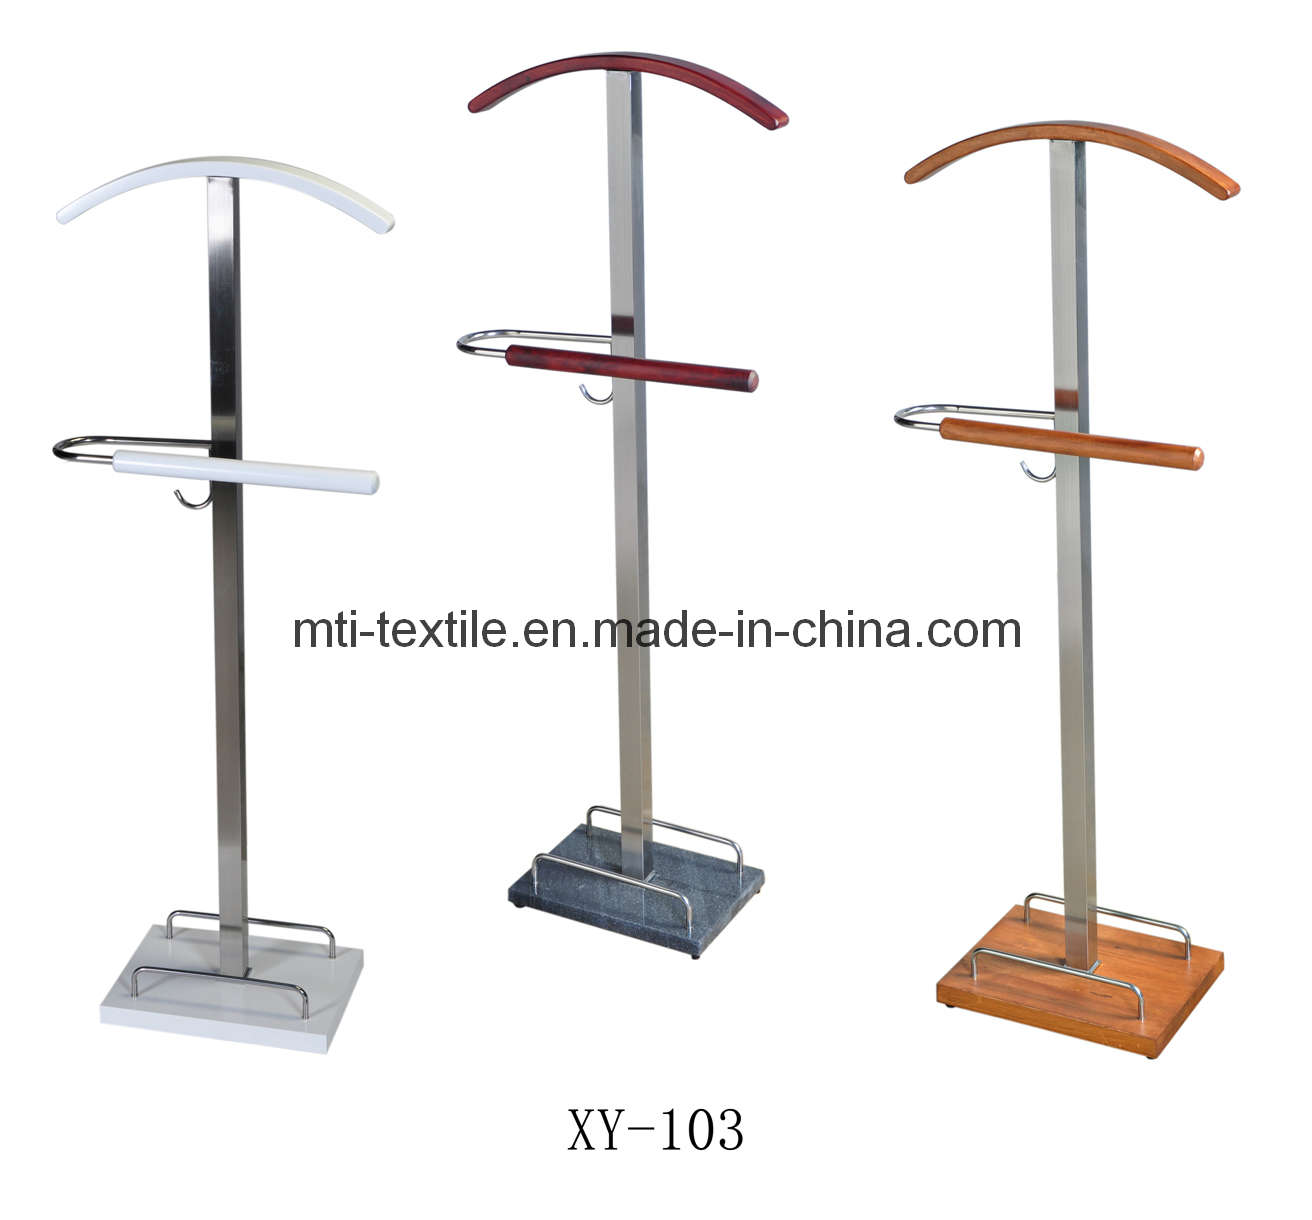 Modern Shape Of standing Coat rack in three option colors